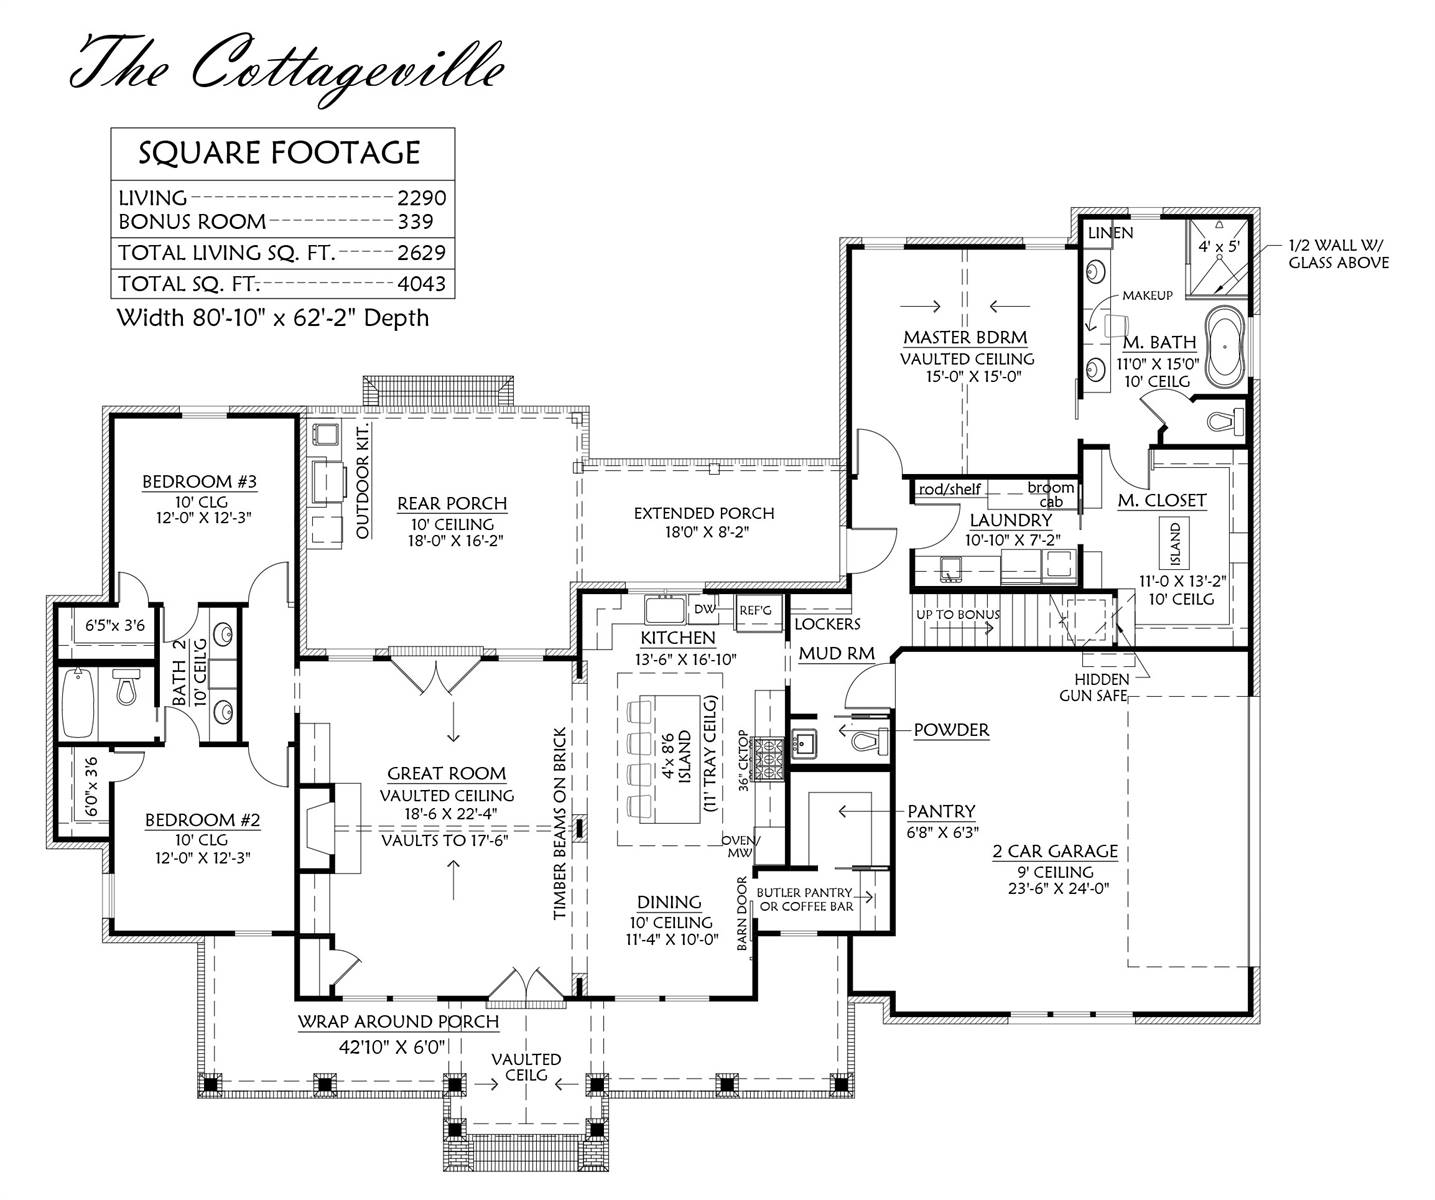 1st Floor image of Cottageville House Plan